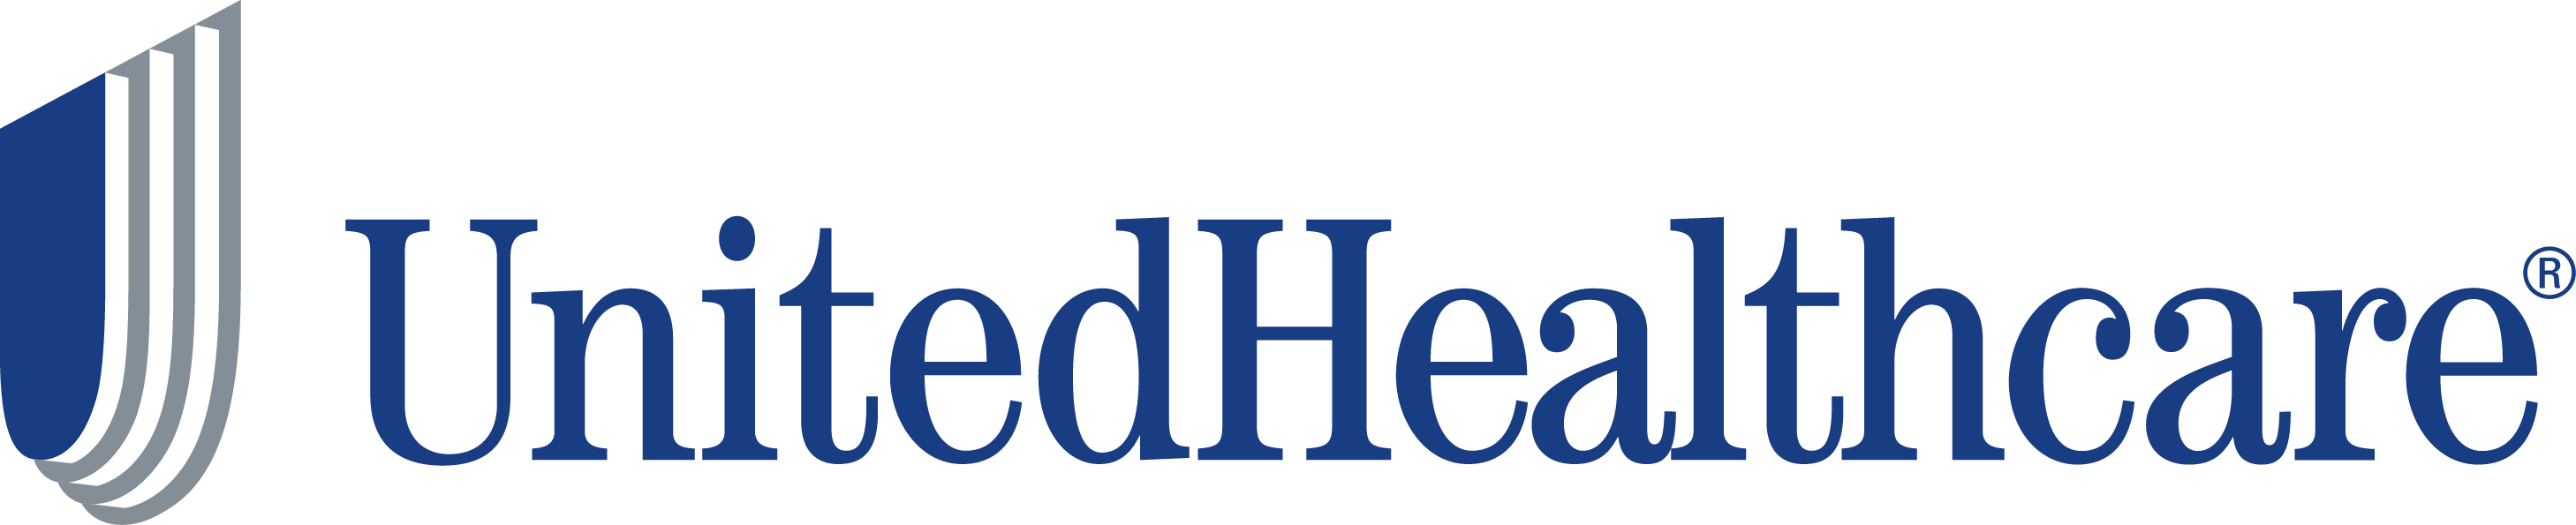 United Health Care Logo (UHC) png